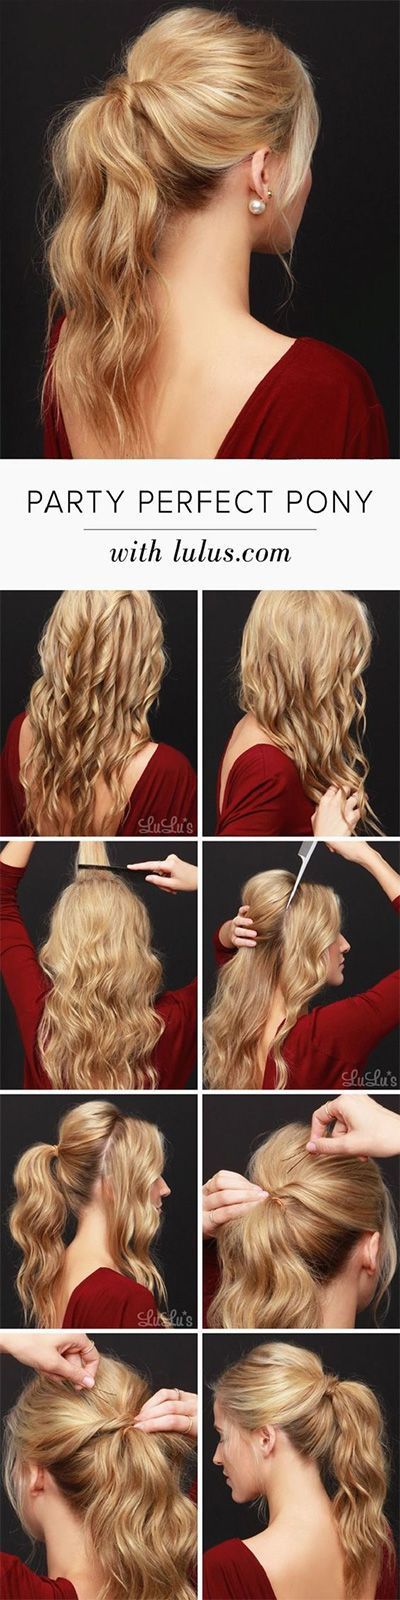 prom hair hacks, tips and tricks inspired by the pretty little liars girls